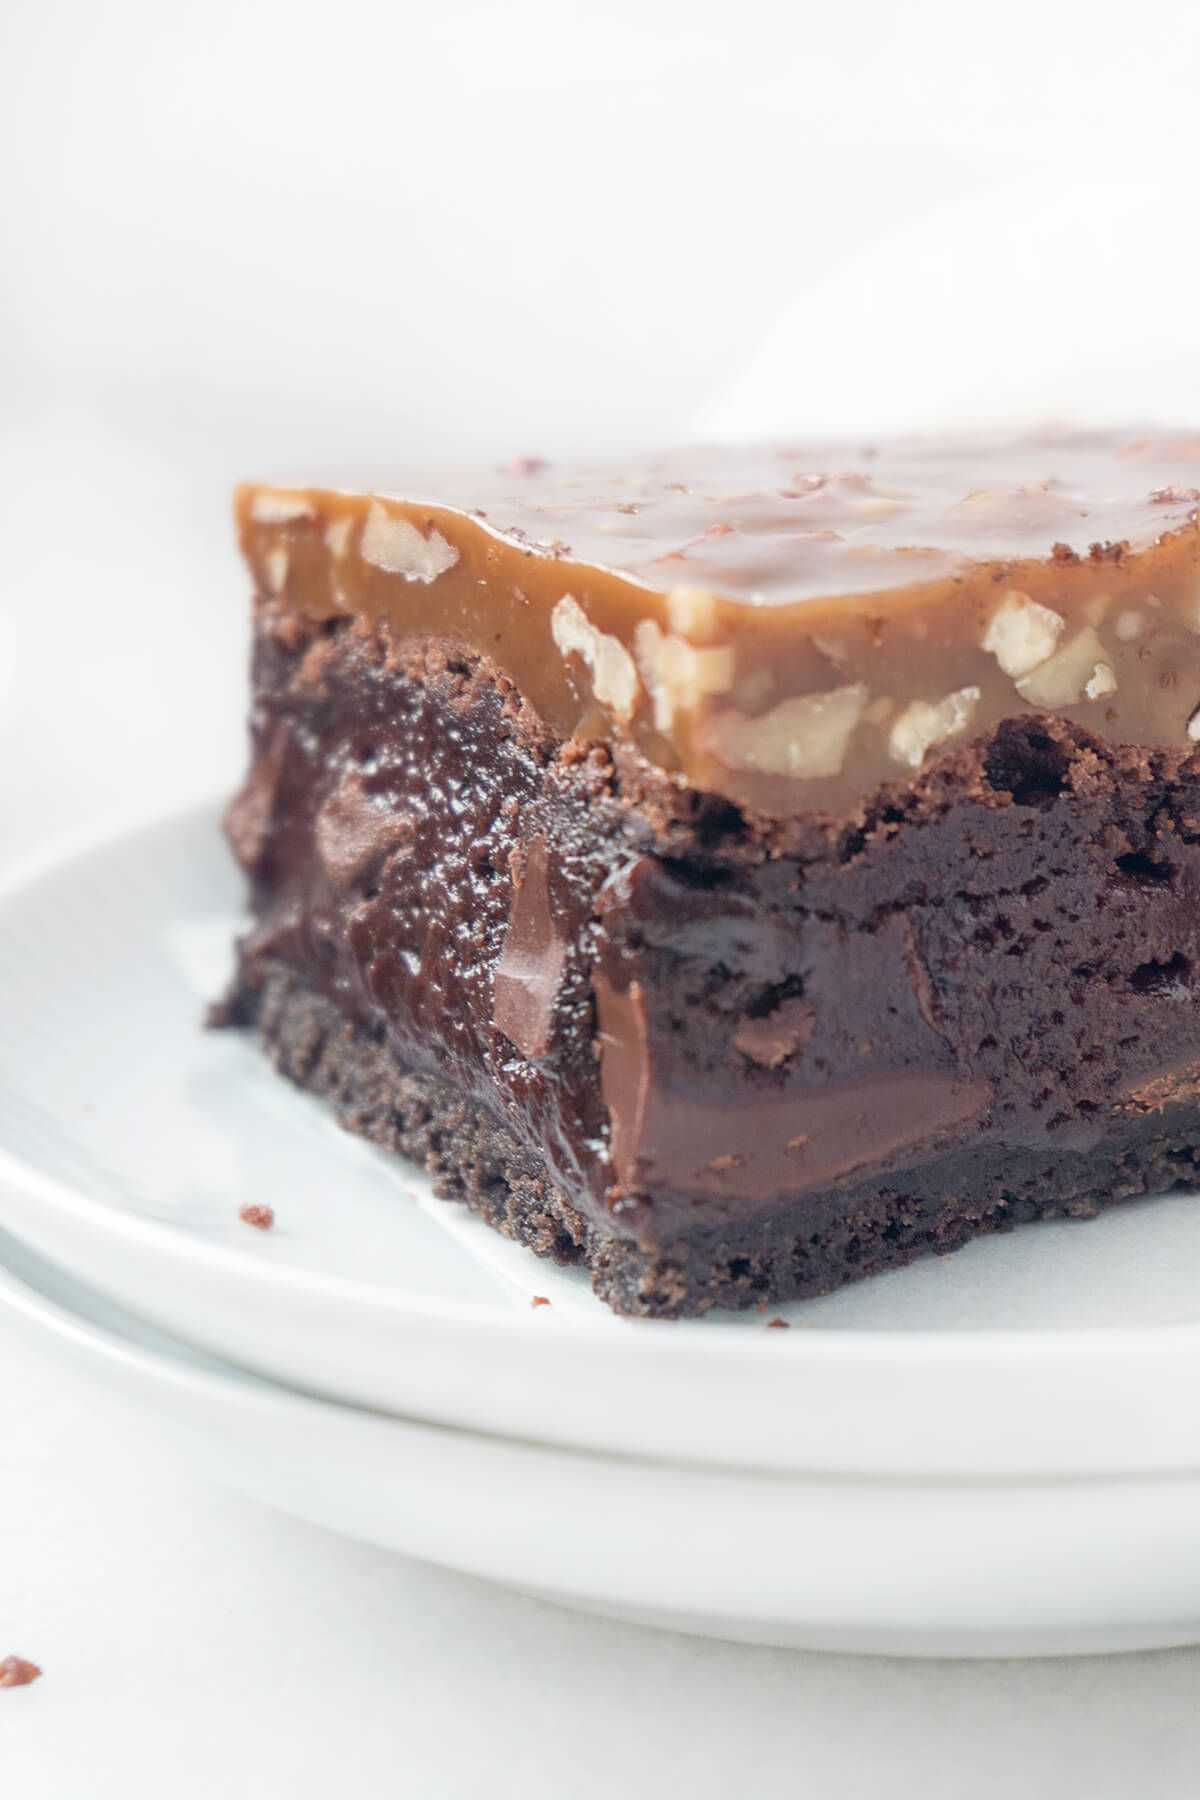 Fudgy Caramel Pecan Turtle Brownies #turtlebrownies Triple-layer Fudgy Caramel Pecan Turtle Brownies - a dense, fudgy brownie on top of an Oreo cookie crust topped with a chewy caramel and pecan topping. #turtlebrownies Fudgy Caramel Pecan Turtle Brownies #turtlebrownies Triple-layer Fudgy Caramel Pecan Turtle Brownies - a dense, fudgy brownie on top of an Oreo cookie crust topped with a chewy caramel and pecan topping. #turtlebrownies Fudgy Caramel Pecan Turtle Brownies #turtlebrownies Triple-l #turtlebrownies